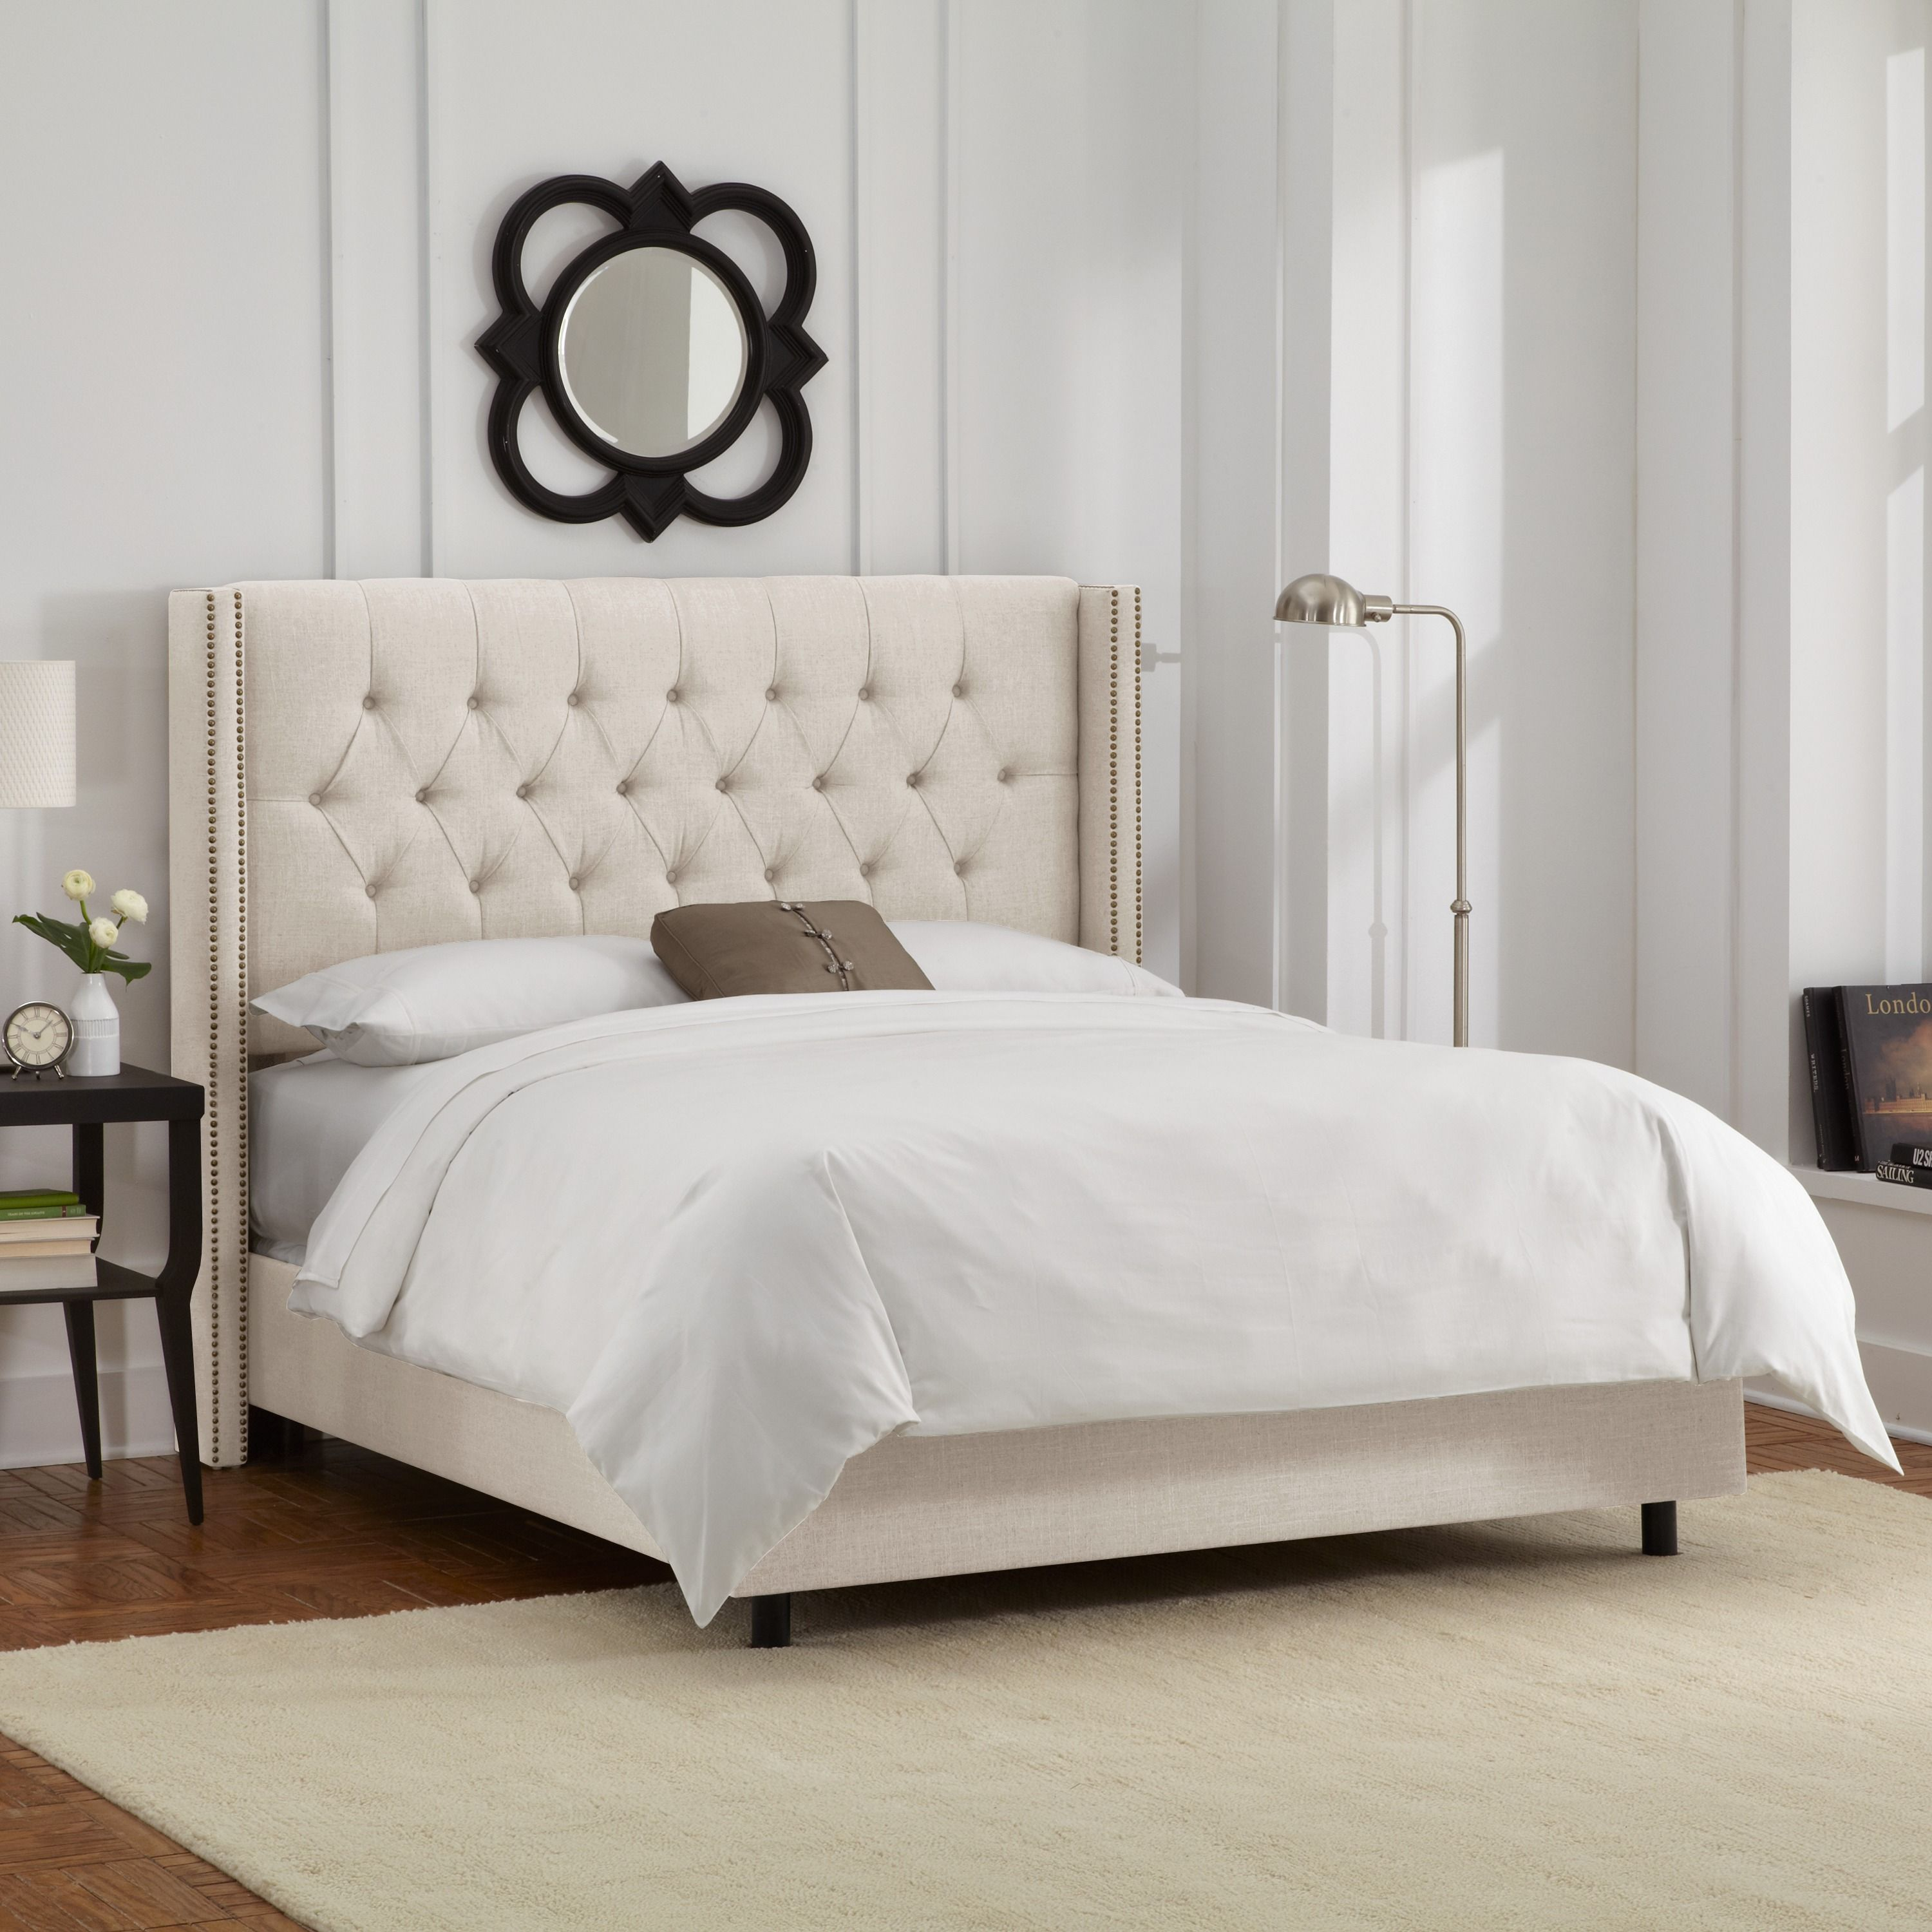 desgin interalle photos luxeo wingback home com interallecom usa bed upholstered interior platform size king beds catalog with image